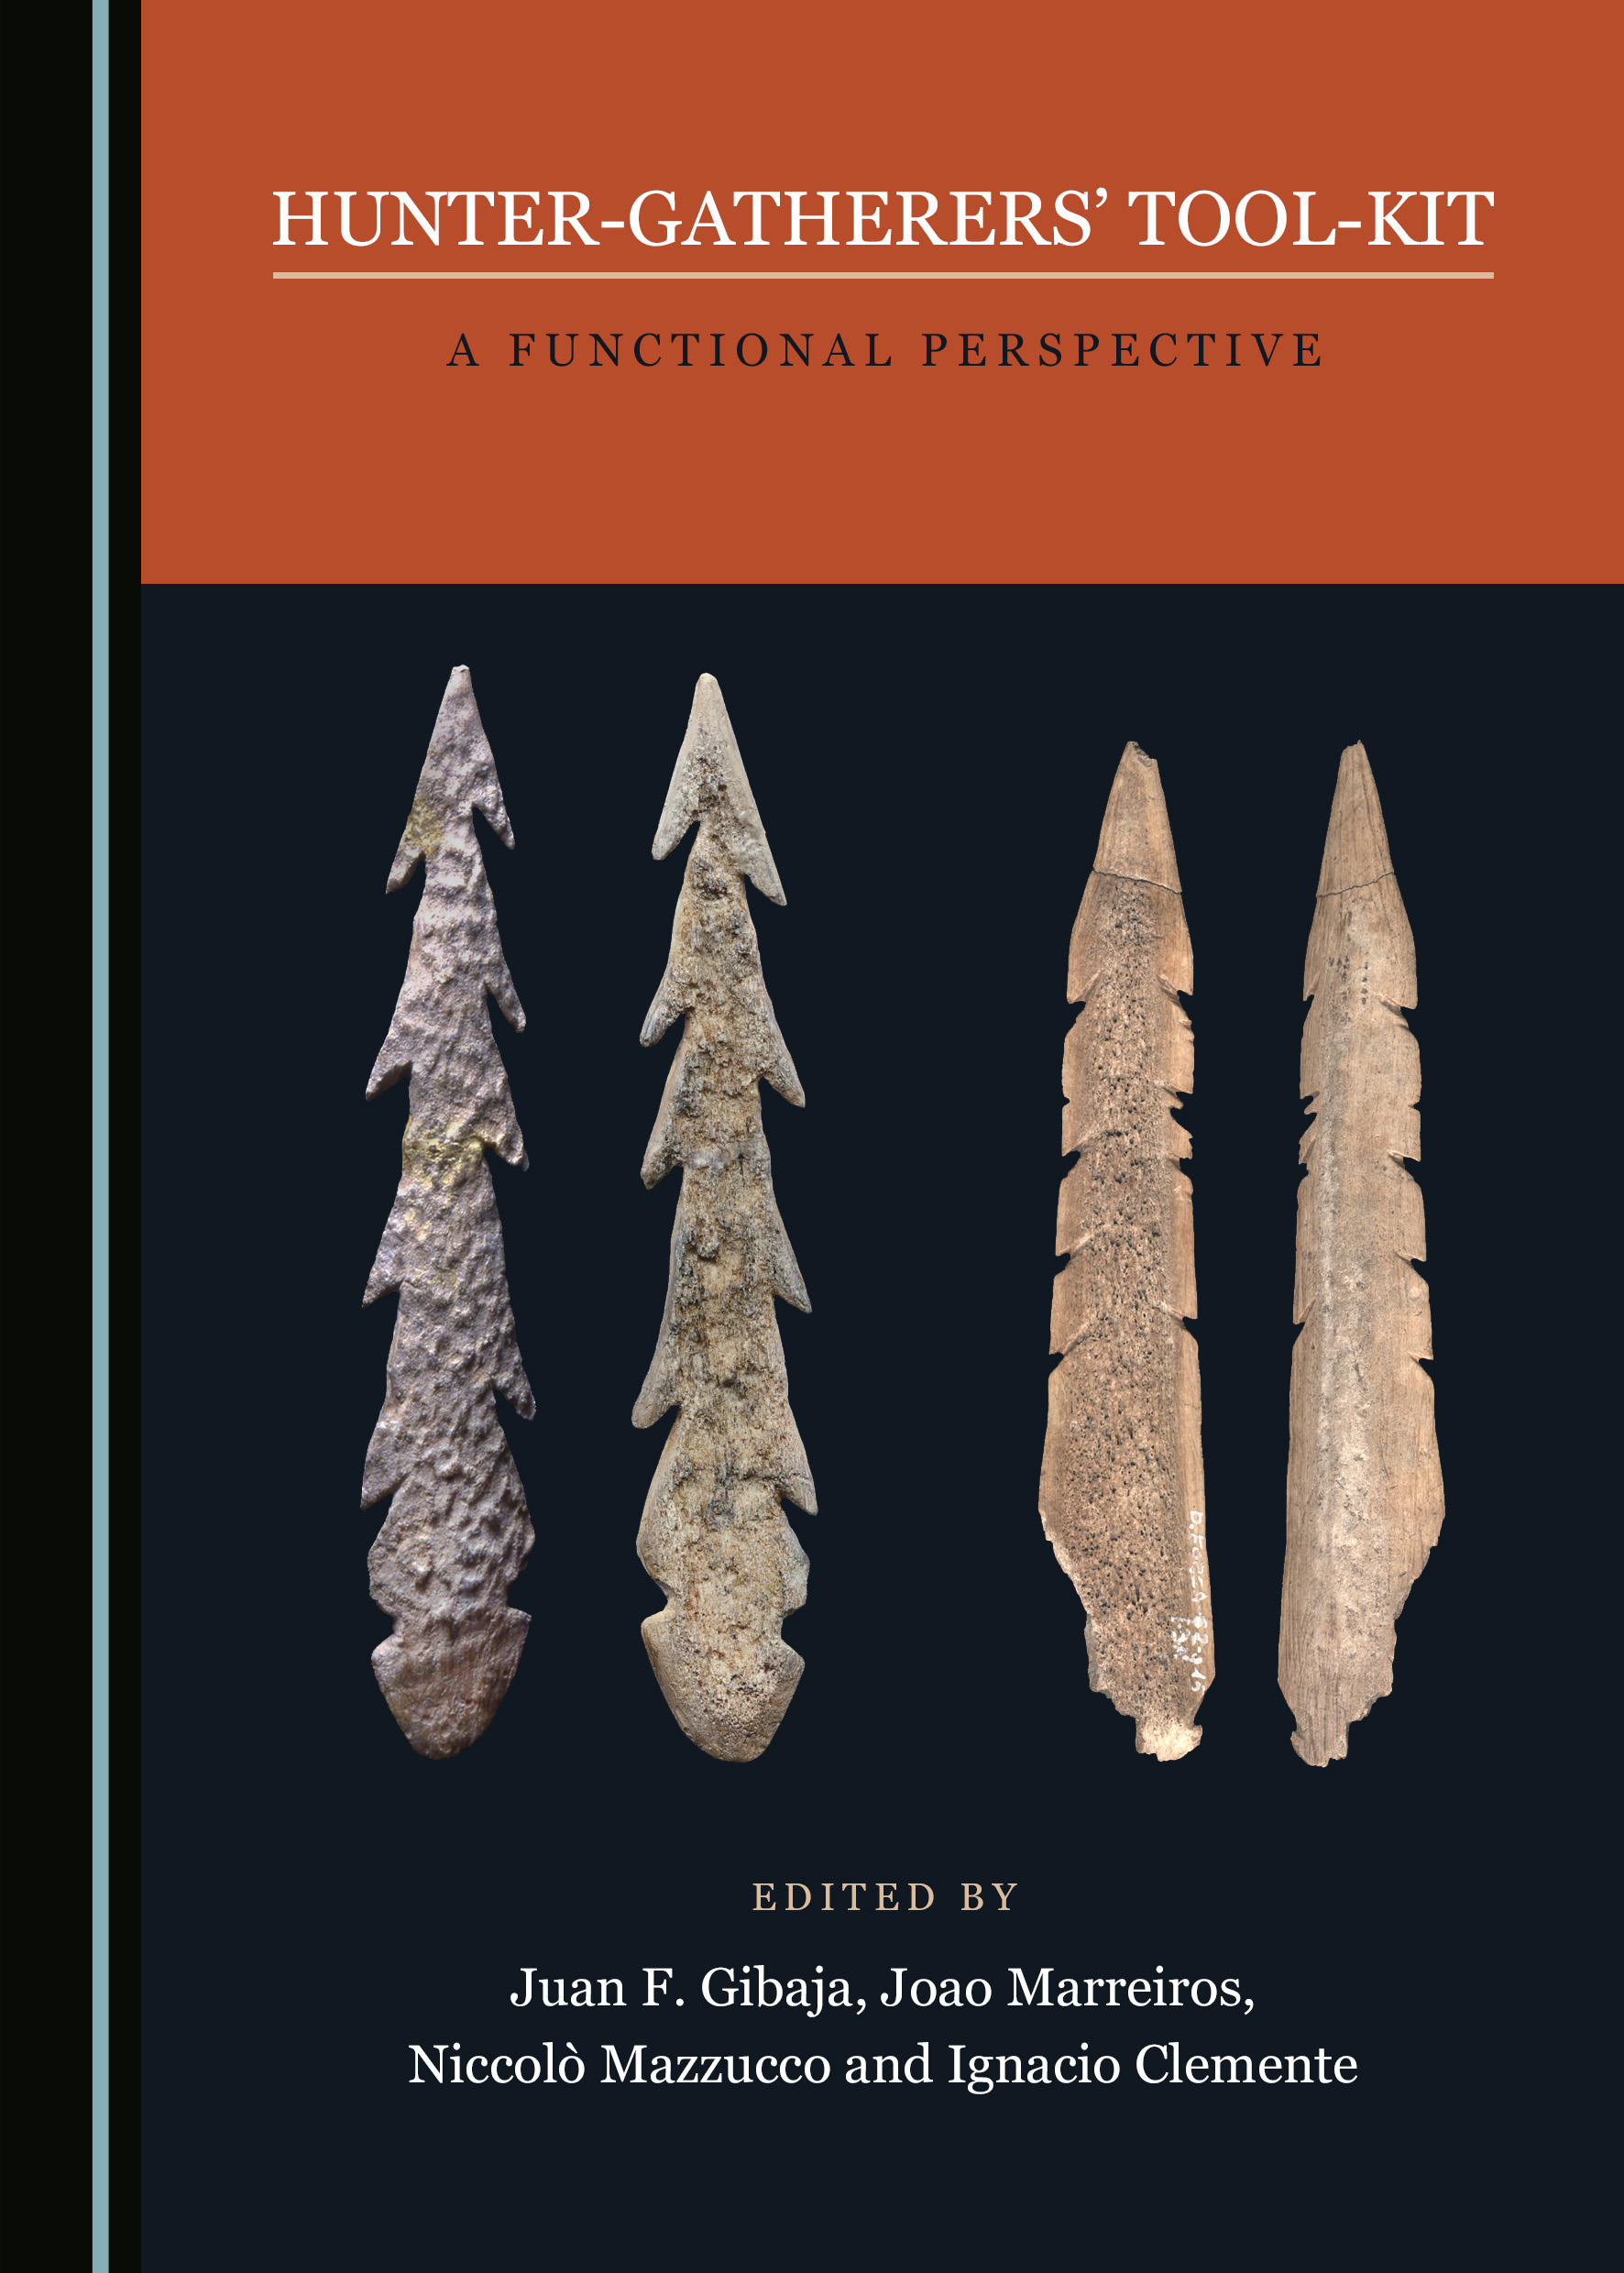 Hunter-Gatherers' Tool-Kit: A Functional Perspective